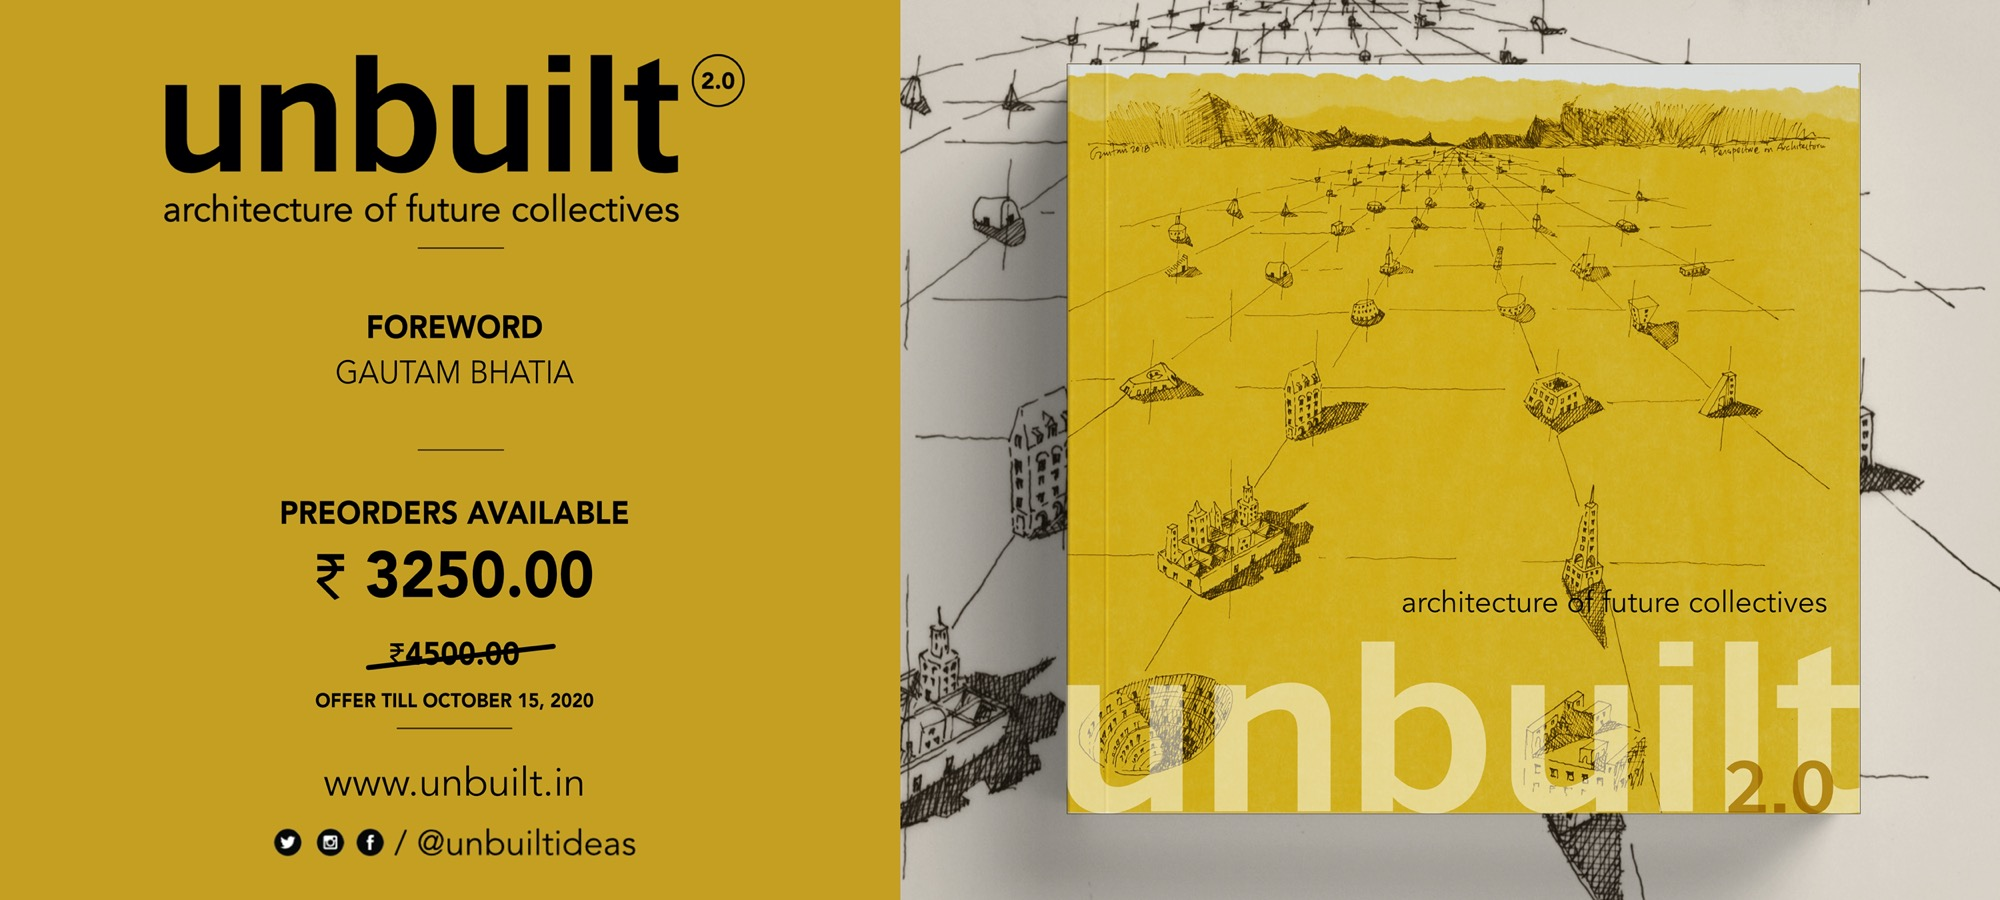 Preorder Banner- Unbuilt 2.0: Architecture of Future Collectives